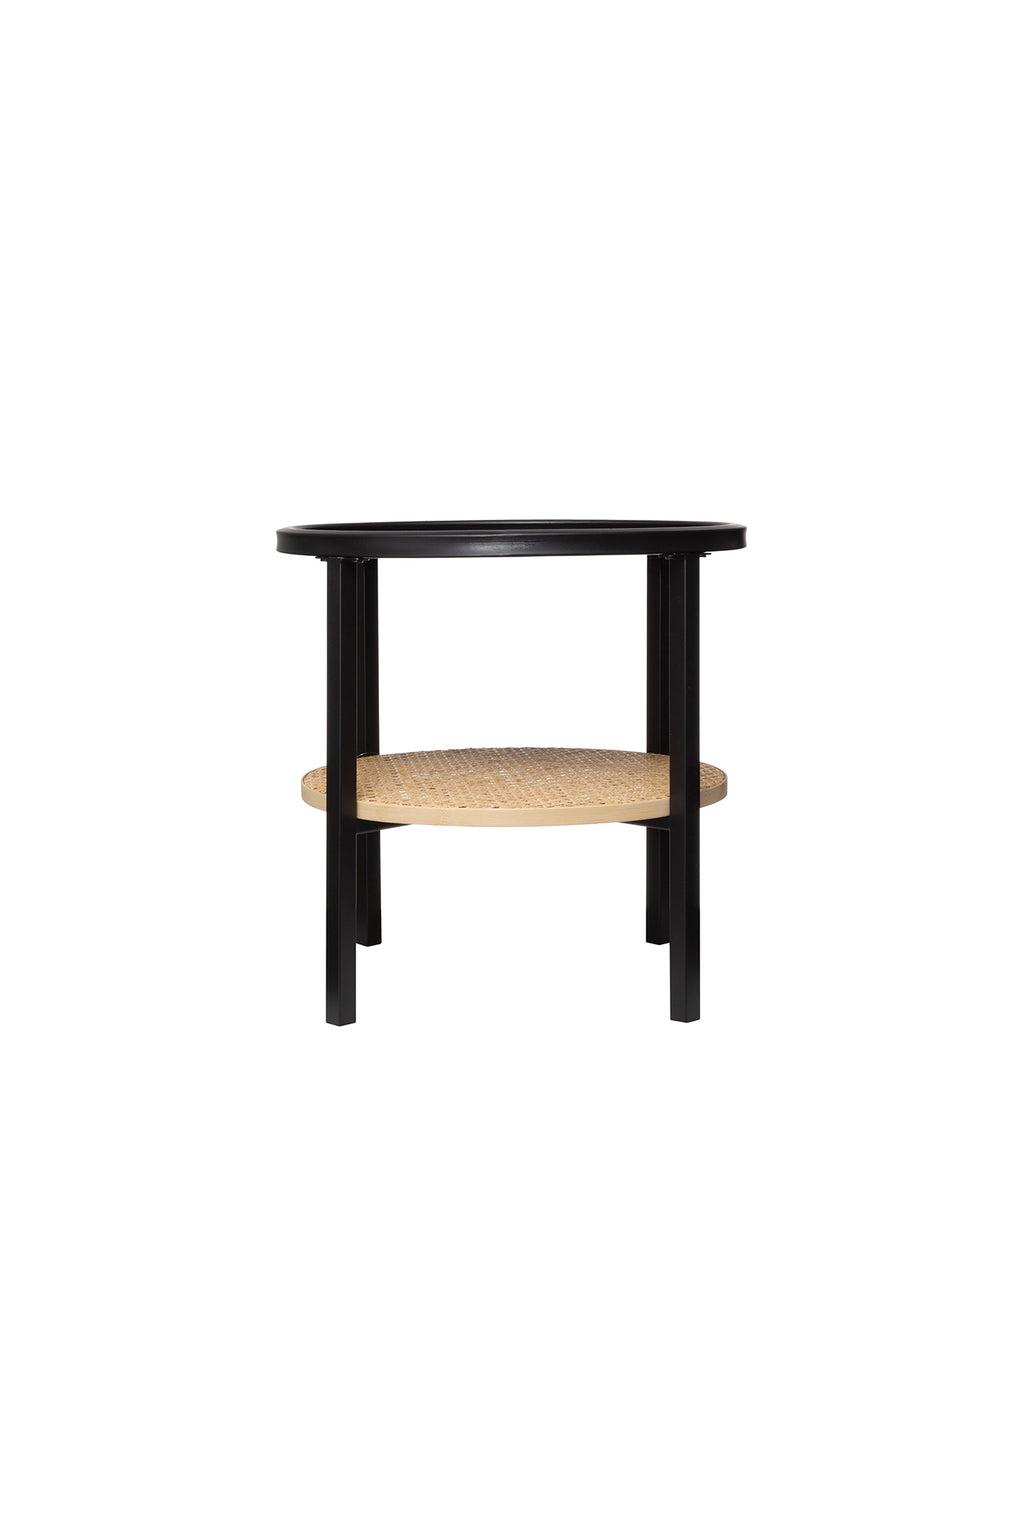 Fairfax Accent Table